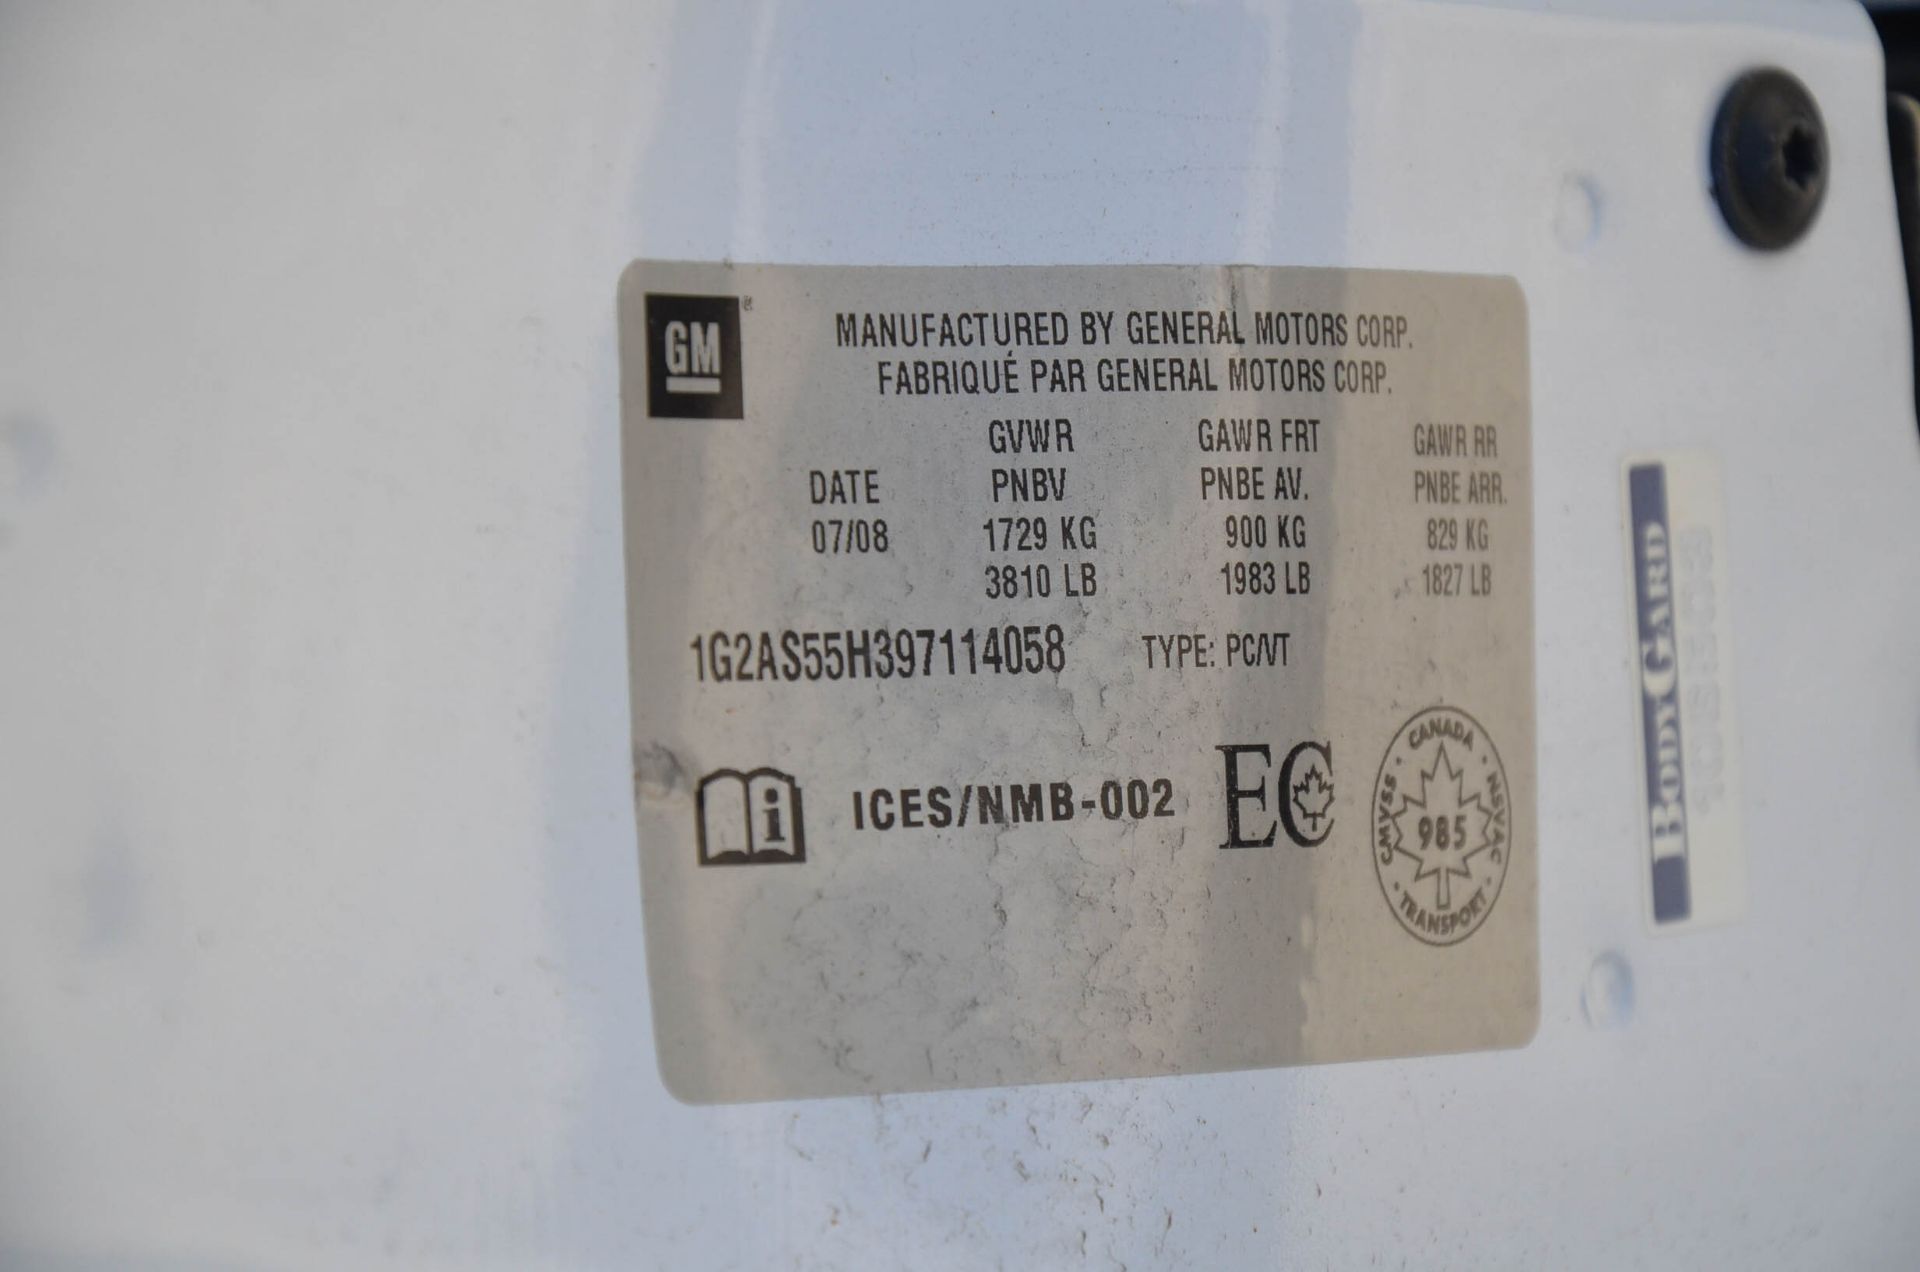 PONTIAC (2008) G5 4-DOOR SEDAN, AUTO, APPROX. 192,000 KM (RECORDED ON METER AT THE TIME OF LISTING), - Image 7 of 9